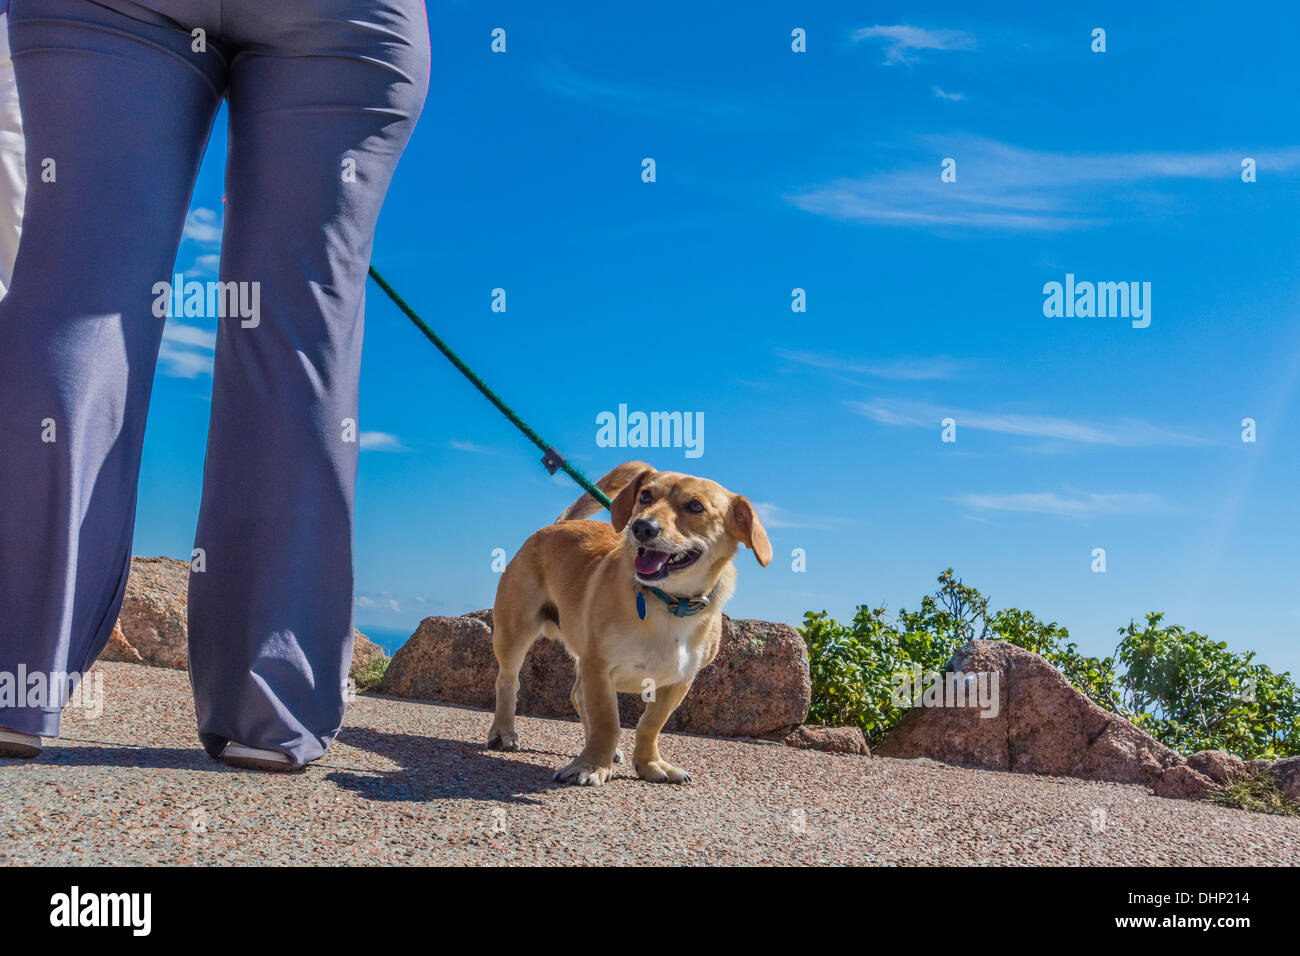 Family dog on leash at Acadia National Park stands by the legs of its owner. - Stock Image